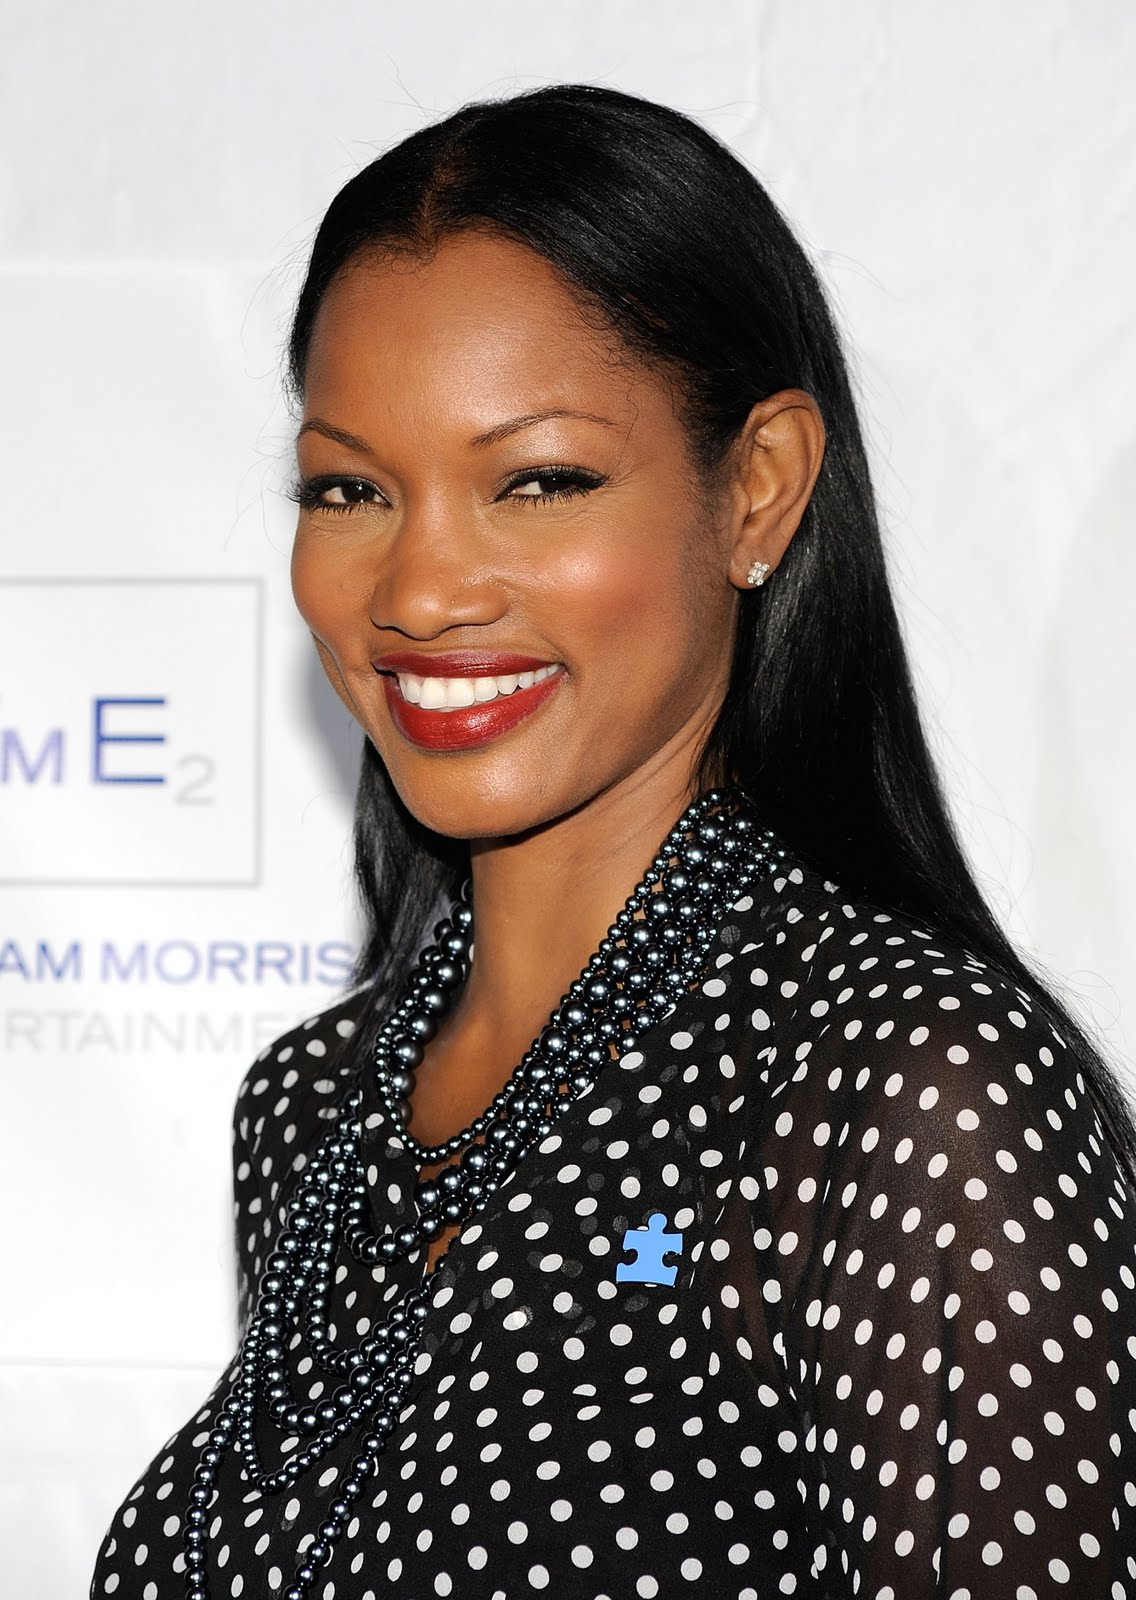 Cleavage Garcelle Beauvais nudes (74 foto and video), Sexy, Cleavage, Instagram, in bikini 2015